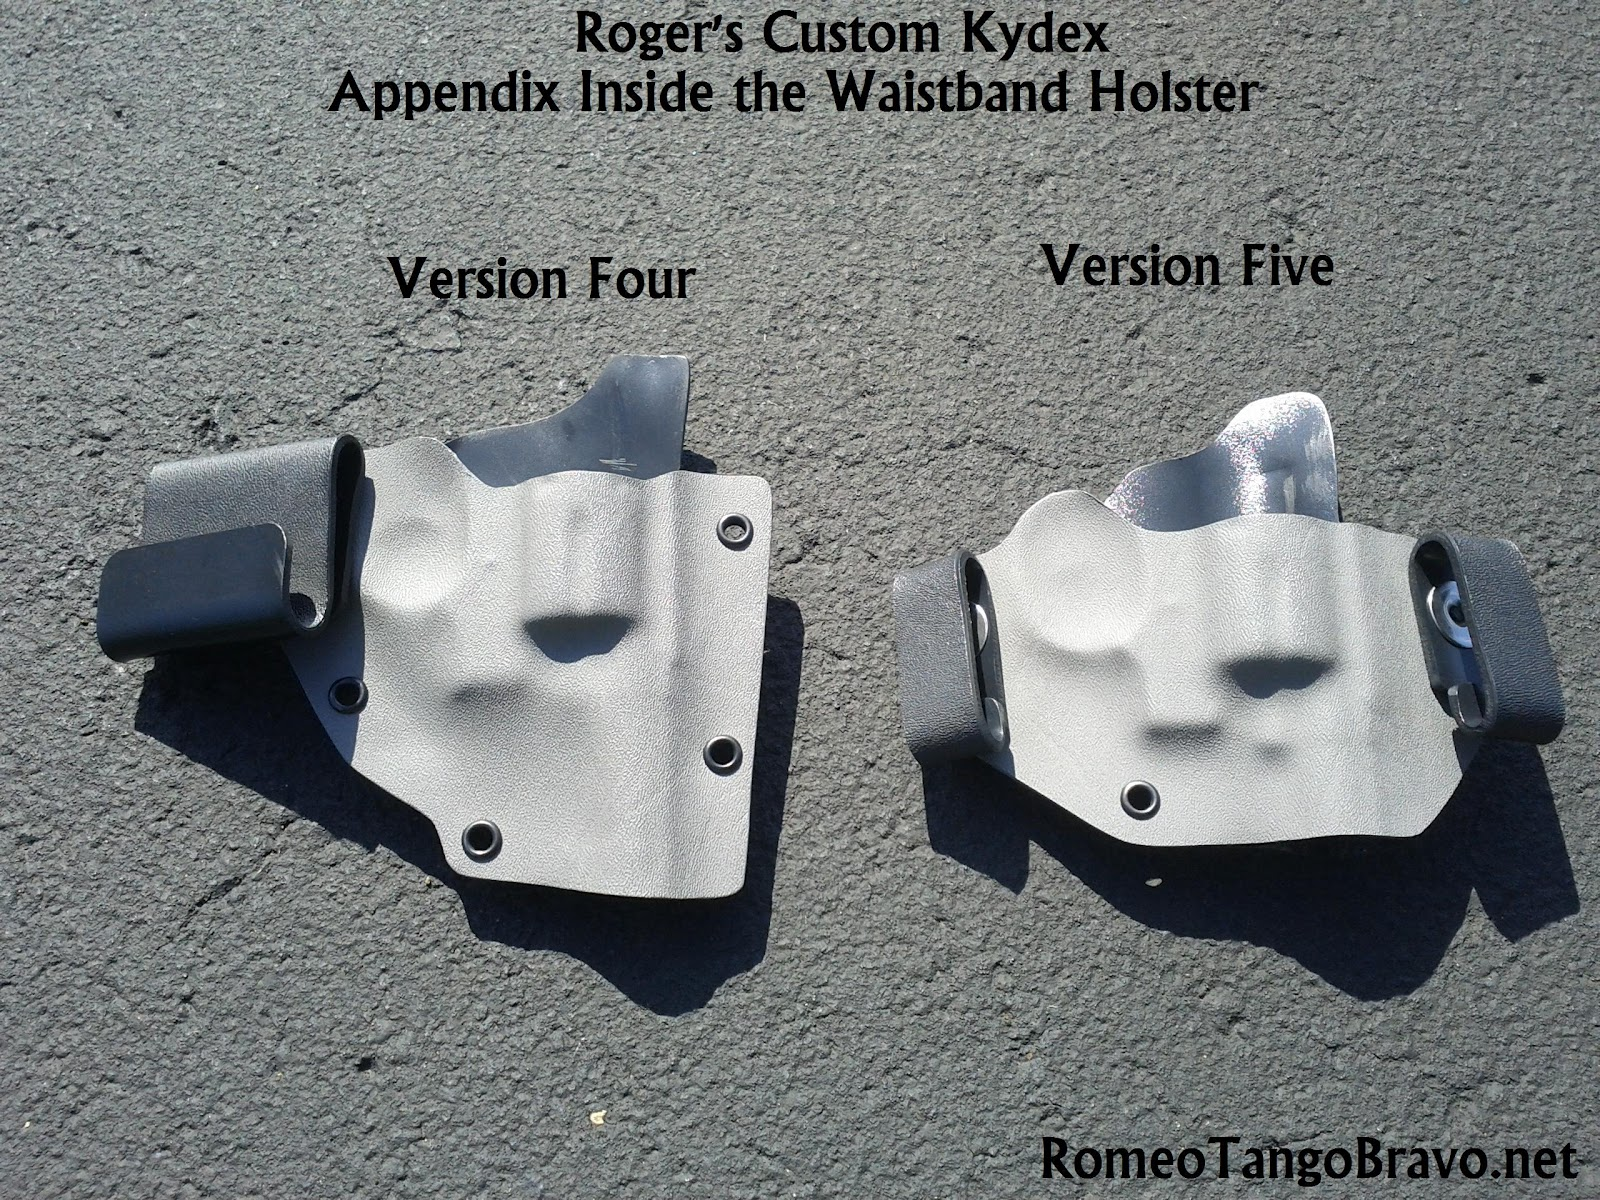 RomeoTangoBravo: Roger's Custom Kydex Holsters Appendix Carry